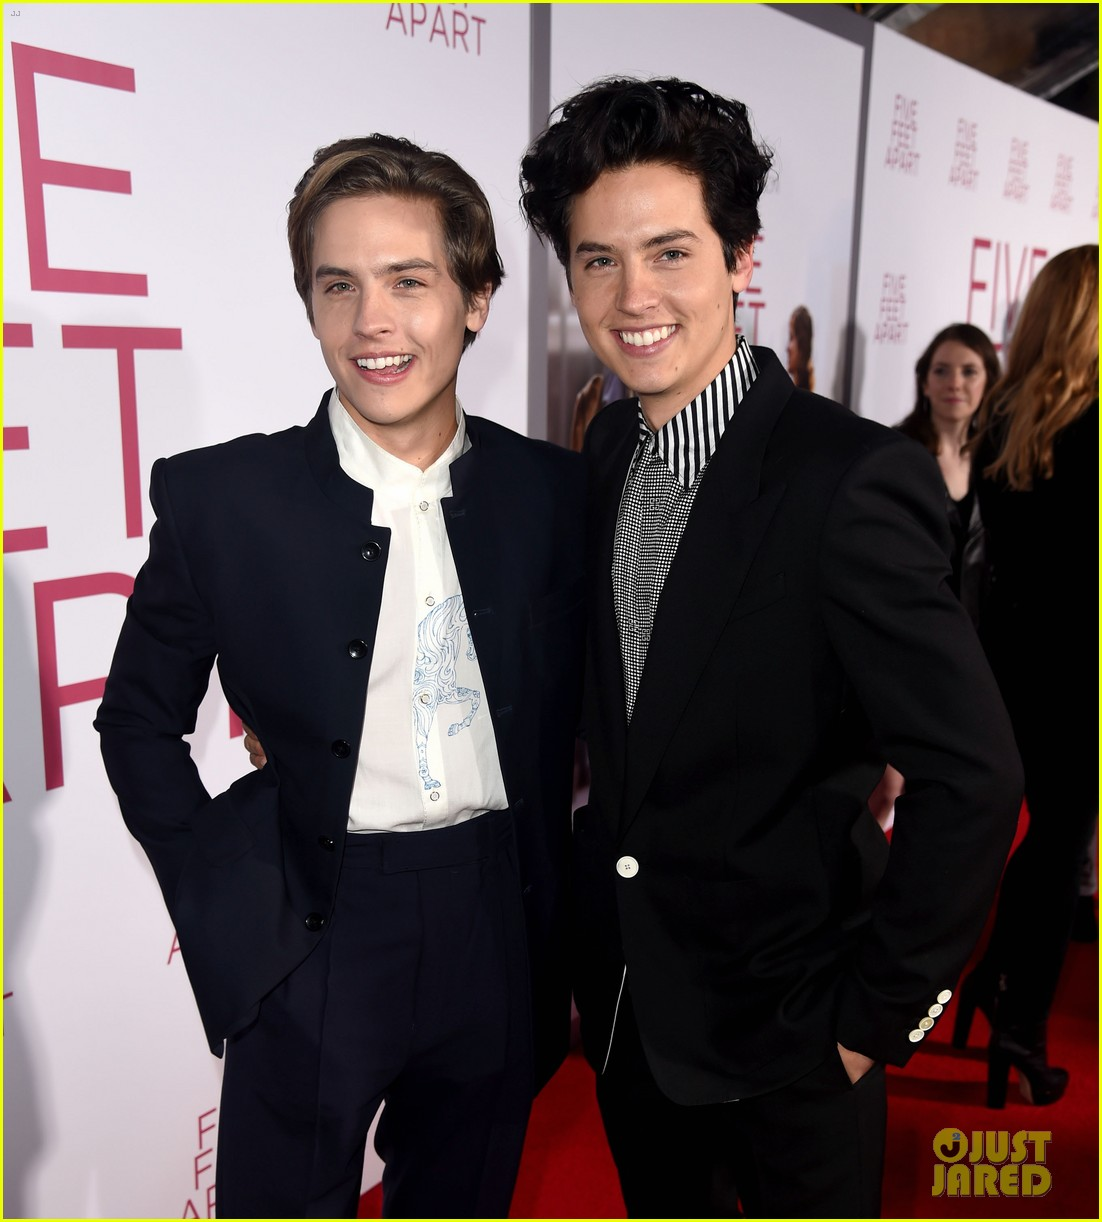 Cole Sprouse's Twin Brother Dylan Loves His Movie 'Five